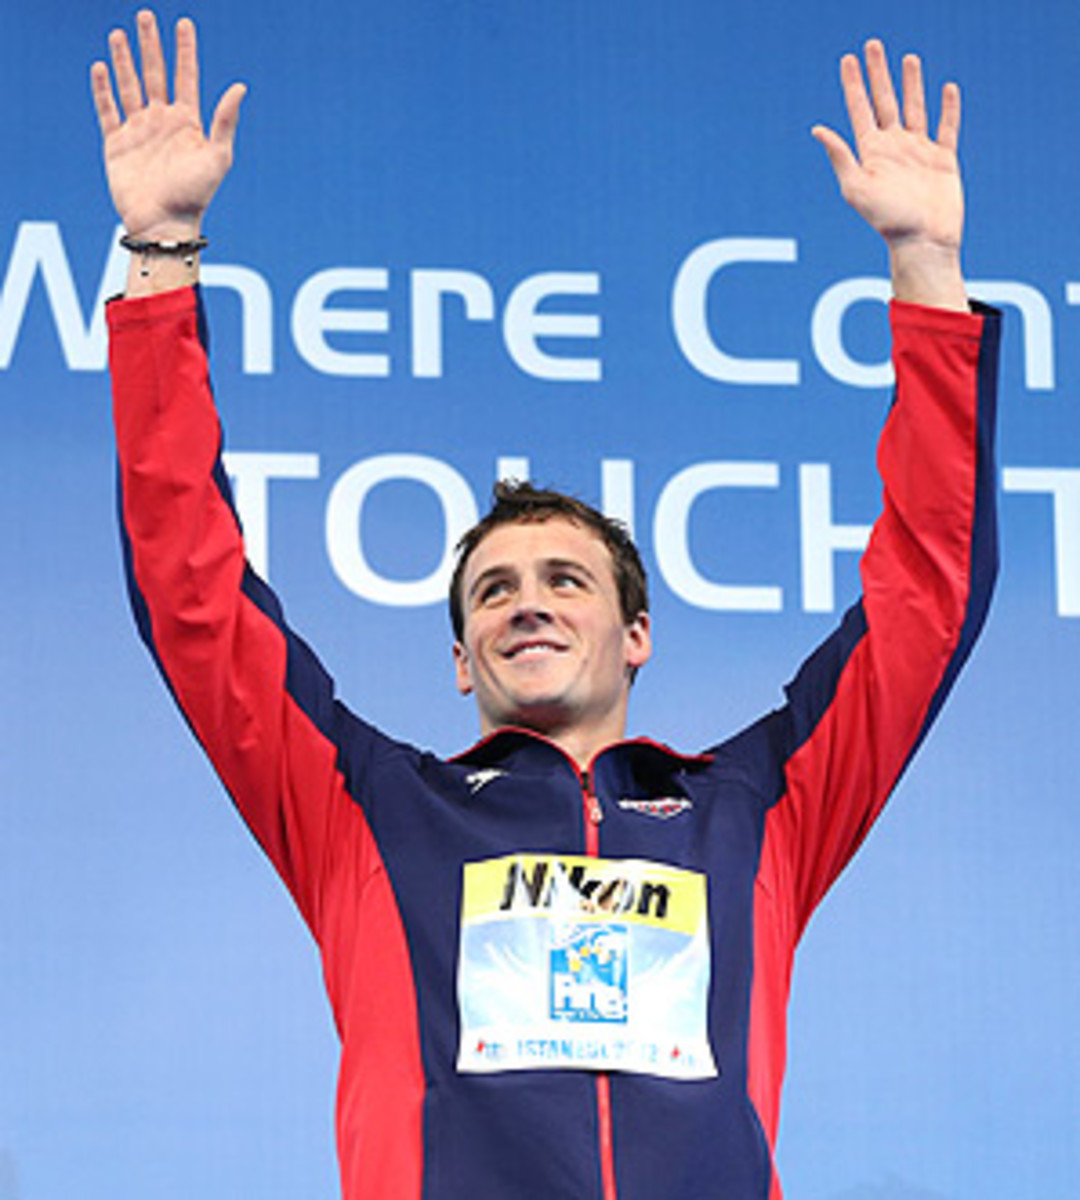 Ryan Lochte broke his world record in the 200m individual medley at the short course world championships.